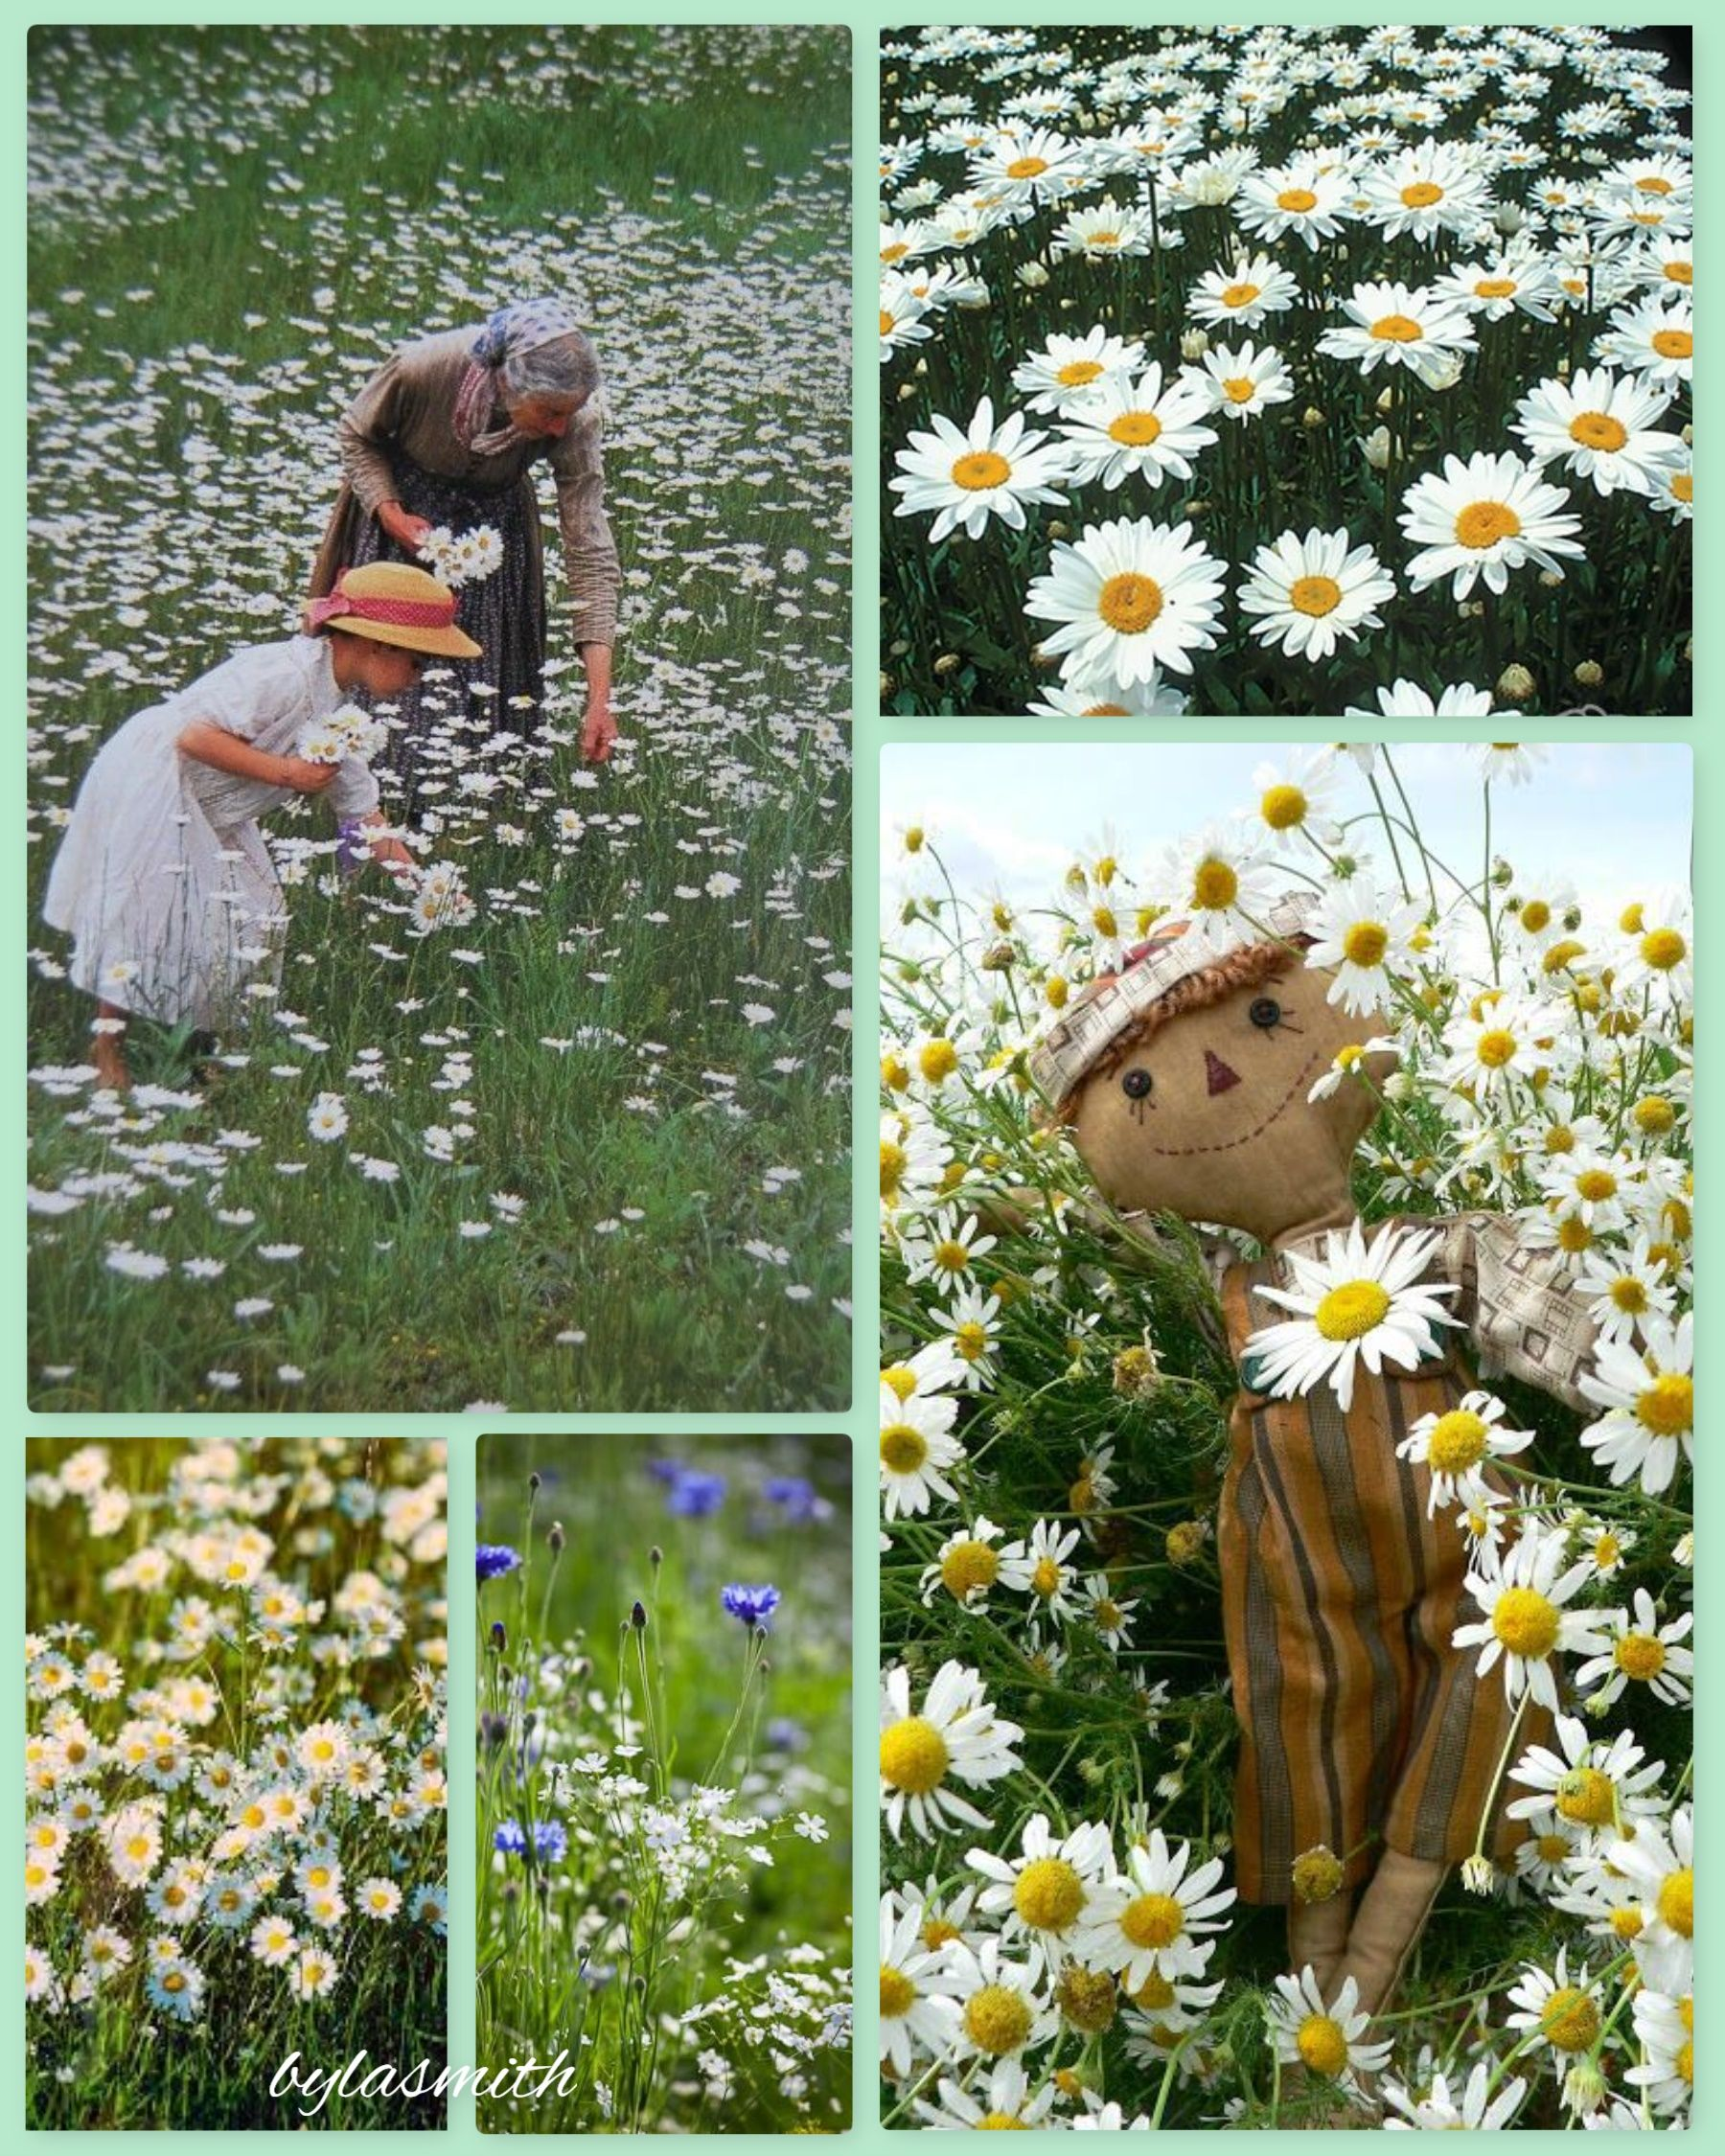 Picking Daisies by LA Smith